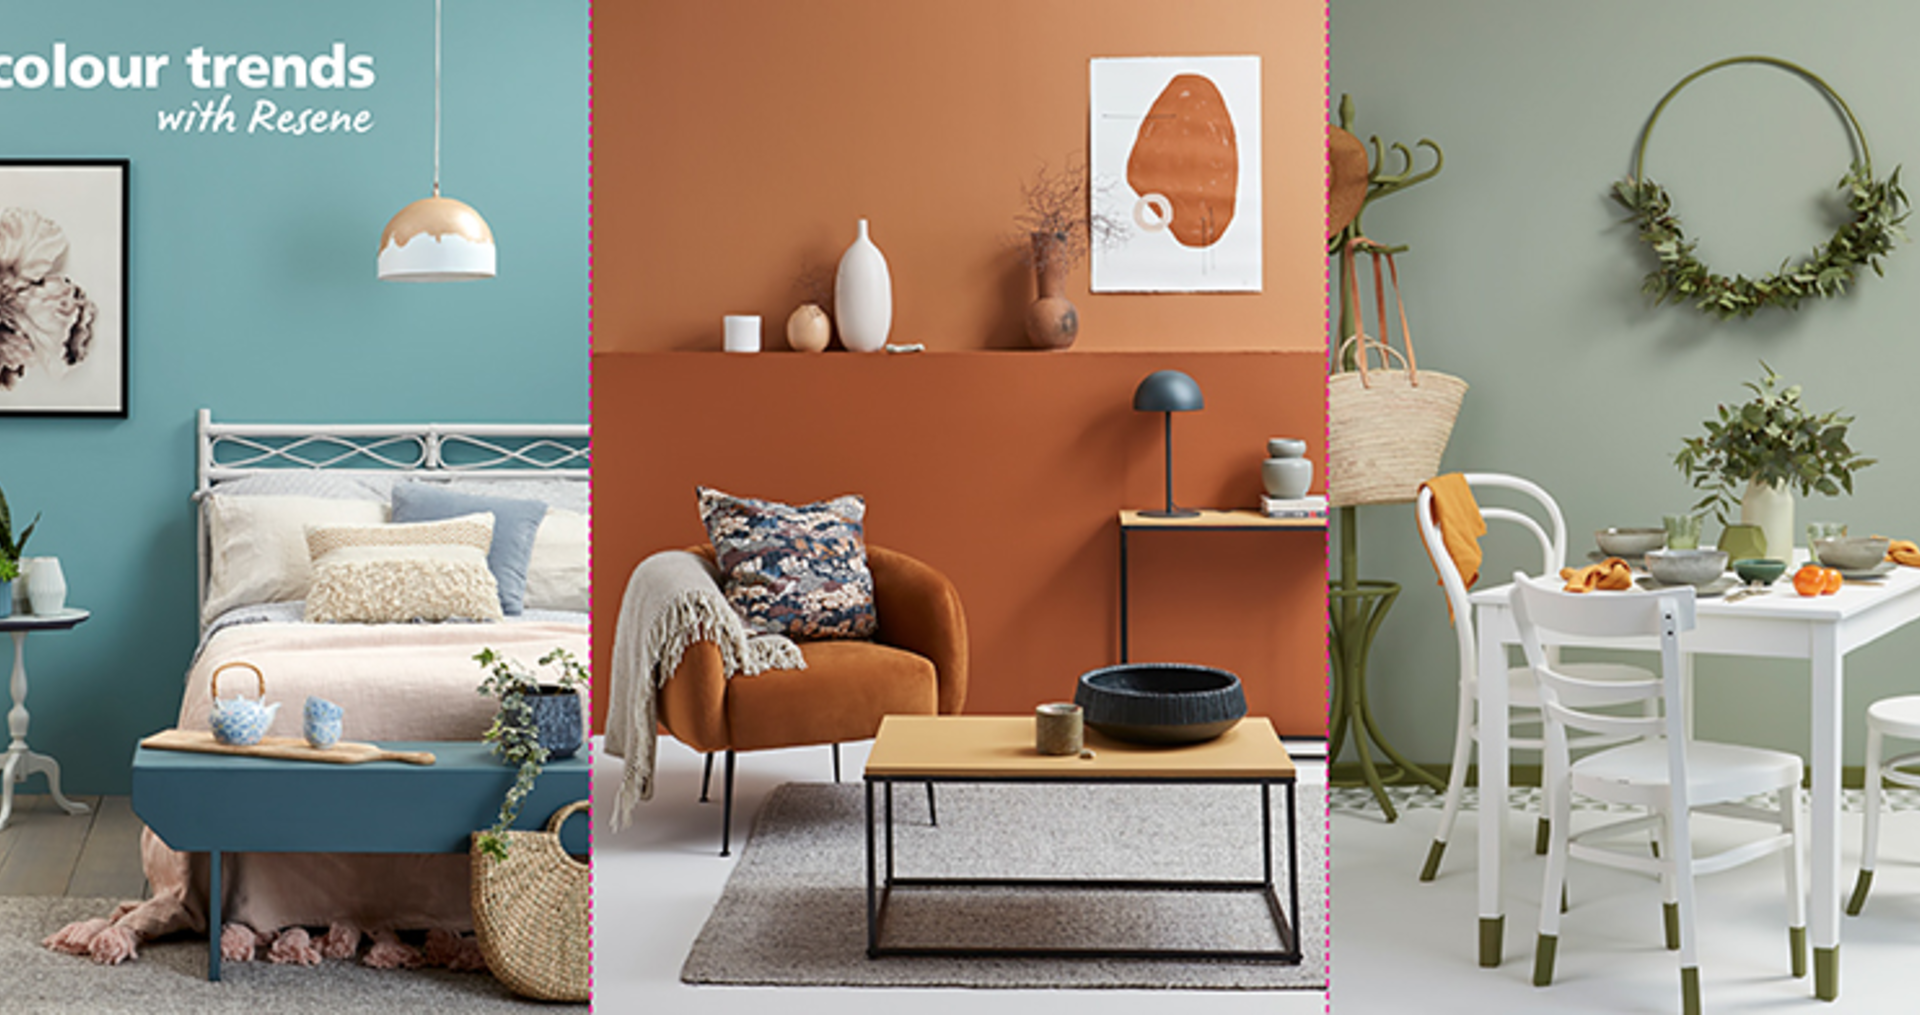 Hot colour trends that are on the rise